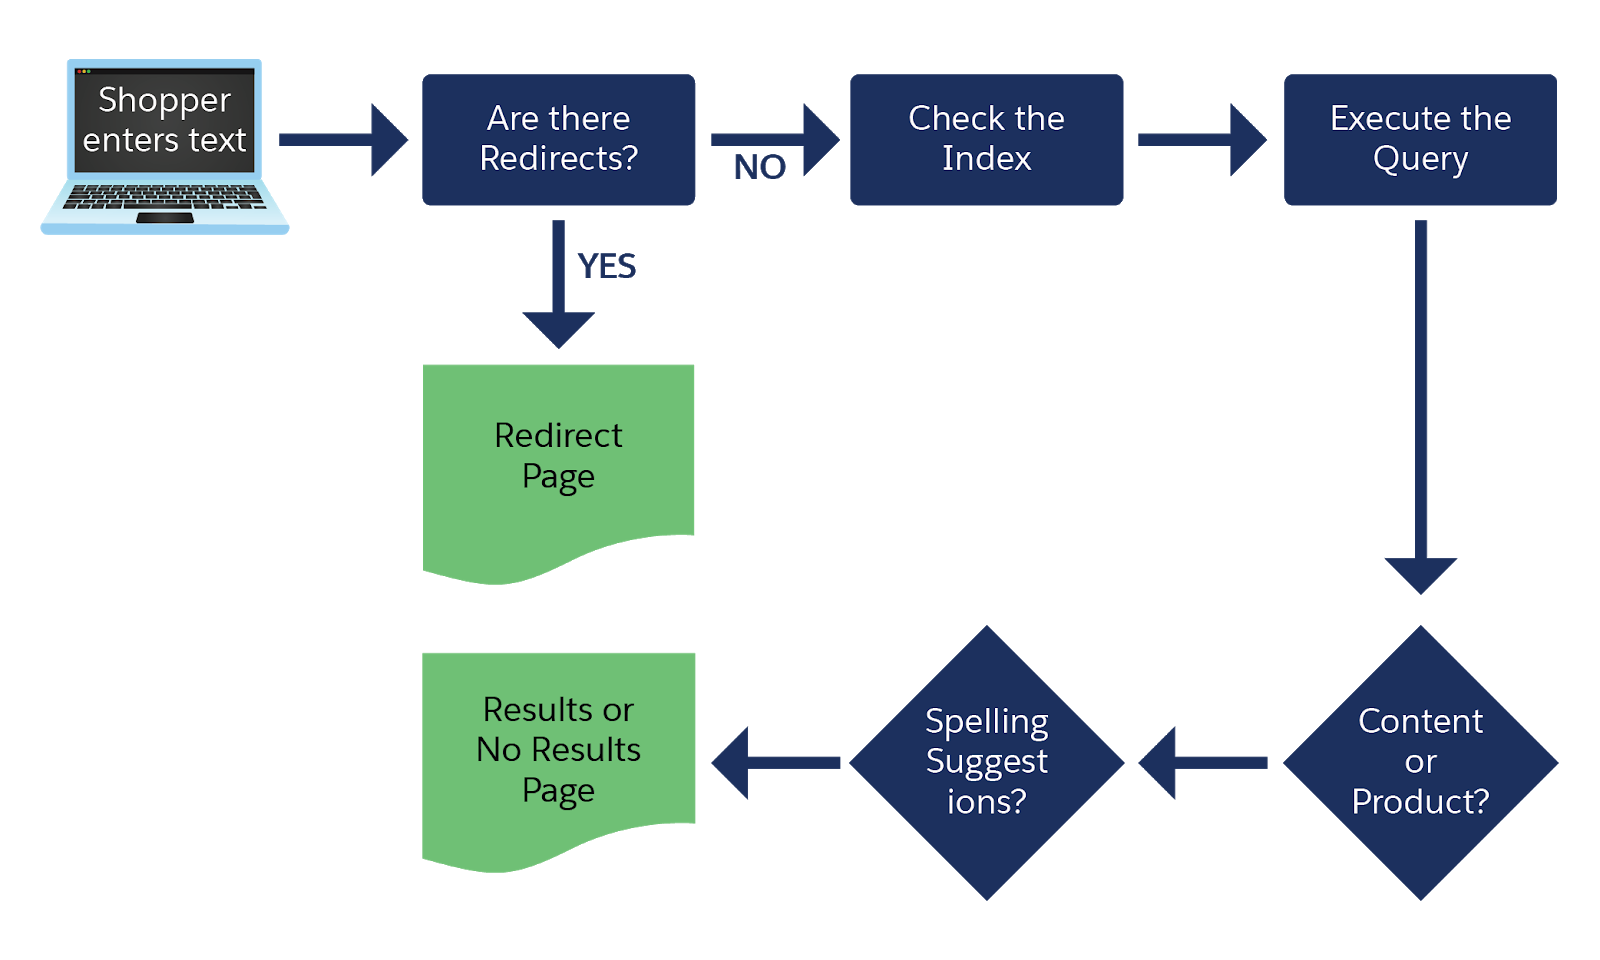 B2C Commerce processes the text a shopper enters by checking for redirects, the search index, whether the results are for content or product, and spelling, and then displaying the results.